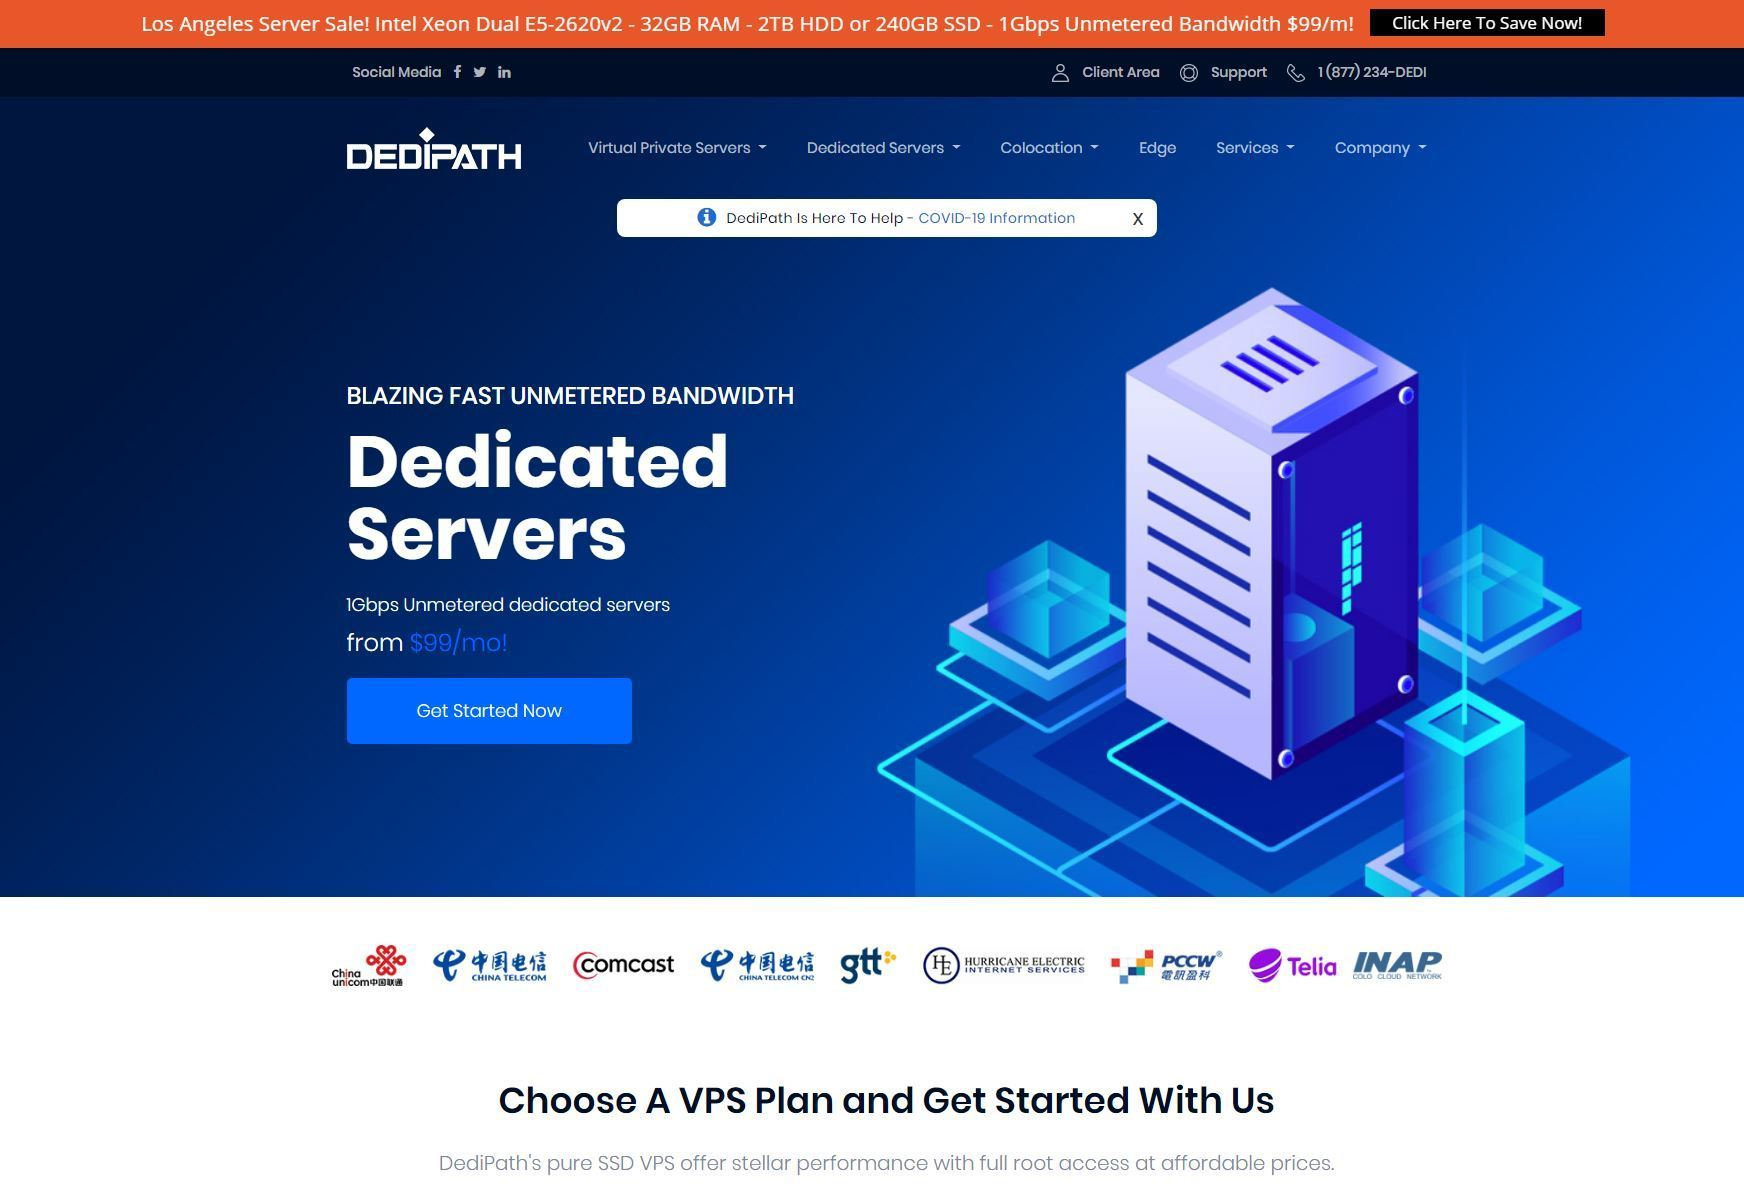 DediPath - OpenVZ VPS, KVM VPS and Dedicated Servers